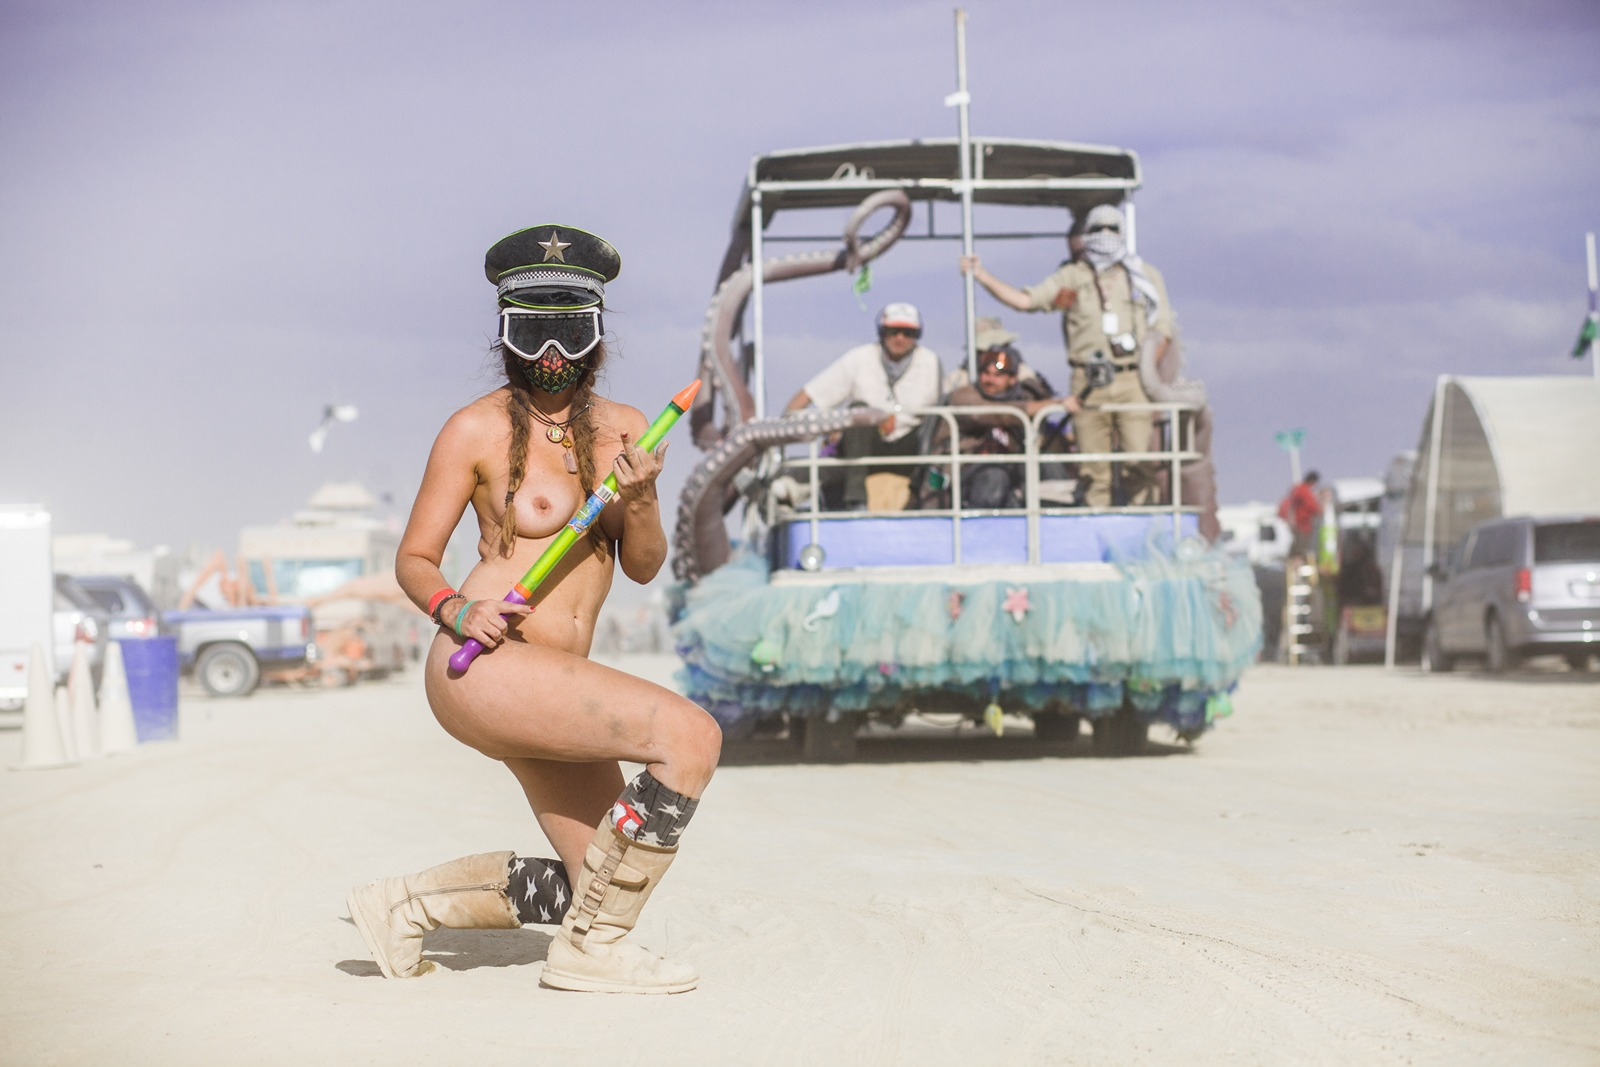 Burning Man - Squirt gun girl